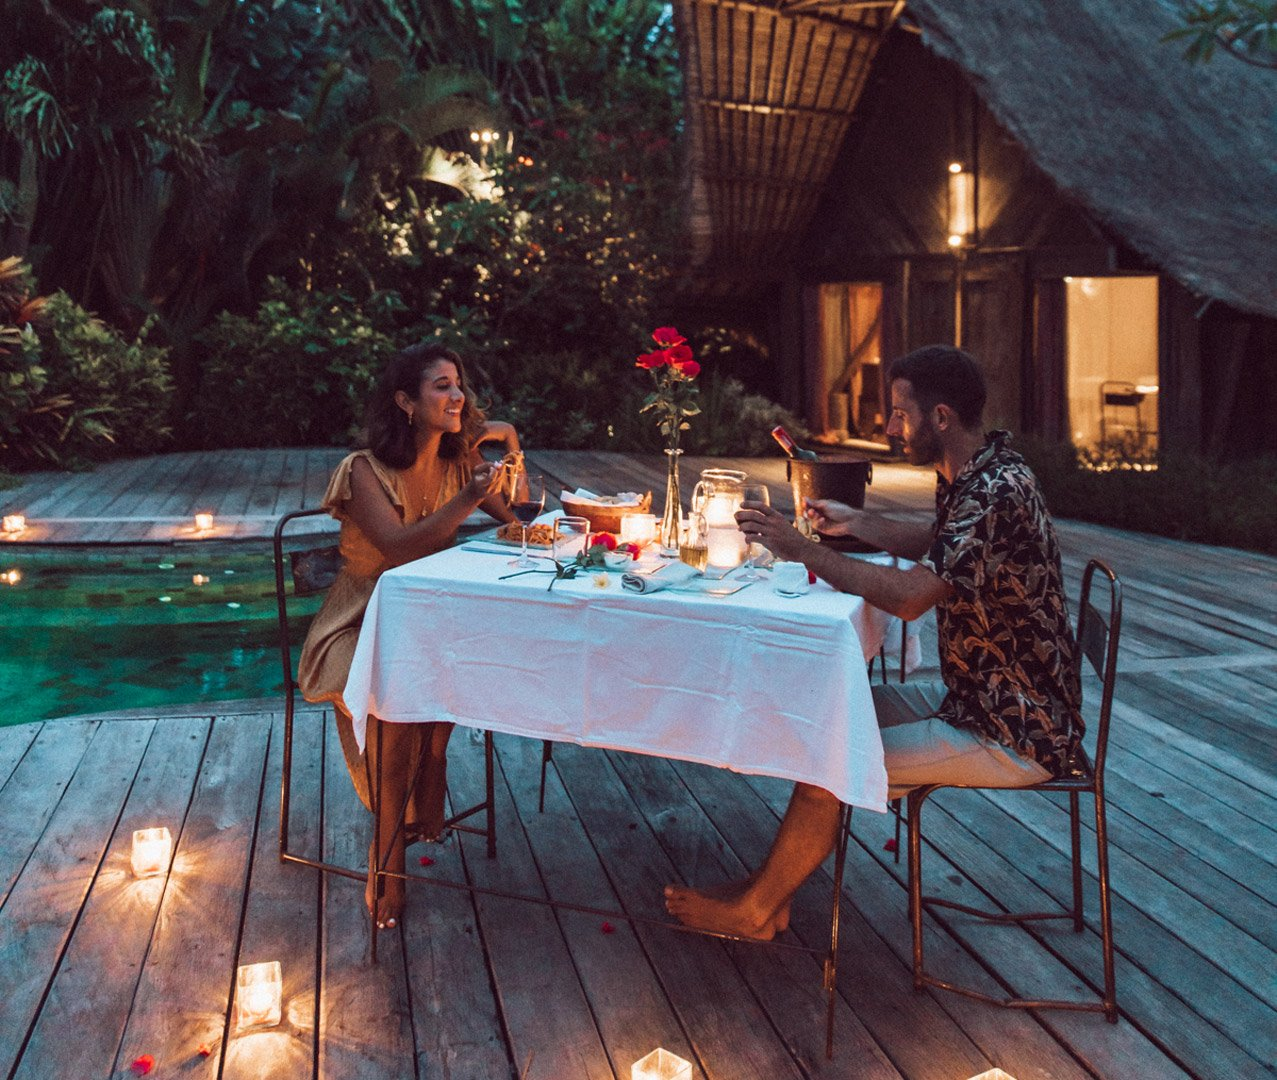 Lovers celebrating their honeymoon with romantic candlelit poolside dinner with roses at Own Villa Bali next to their pool facing eco design bedrooms made of recycled Indonesian iron wood